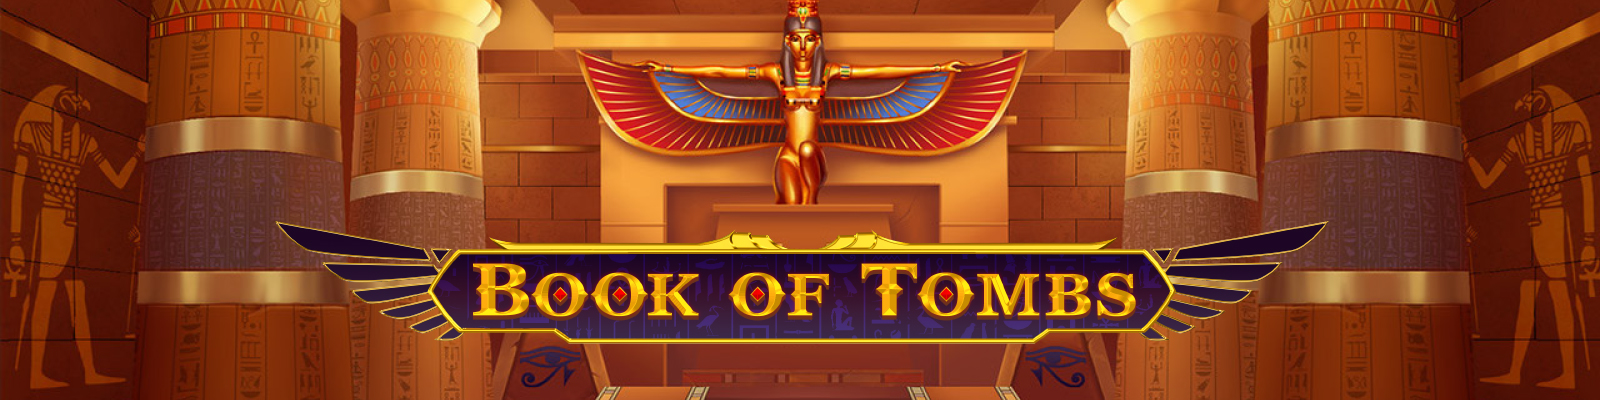 Book of Tombs weekend